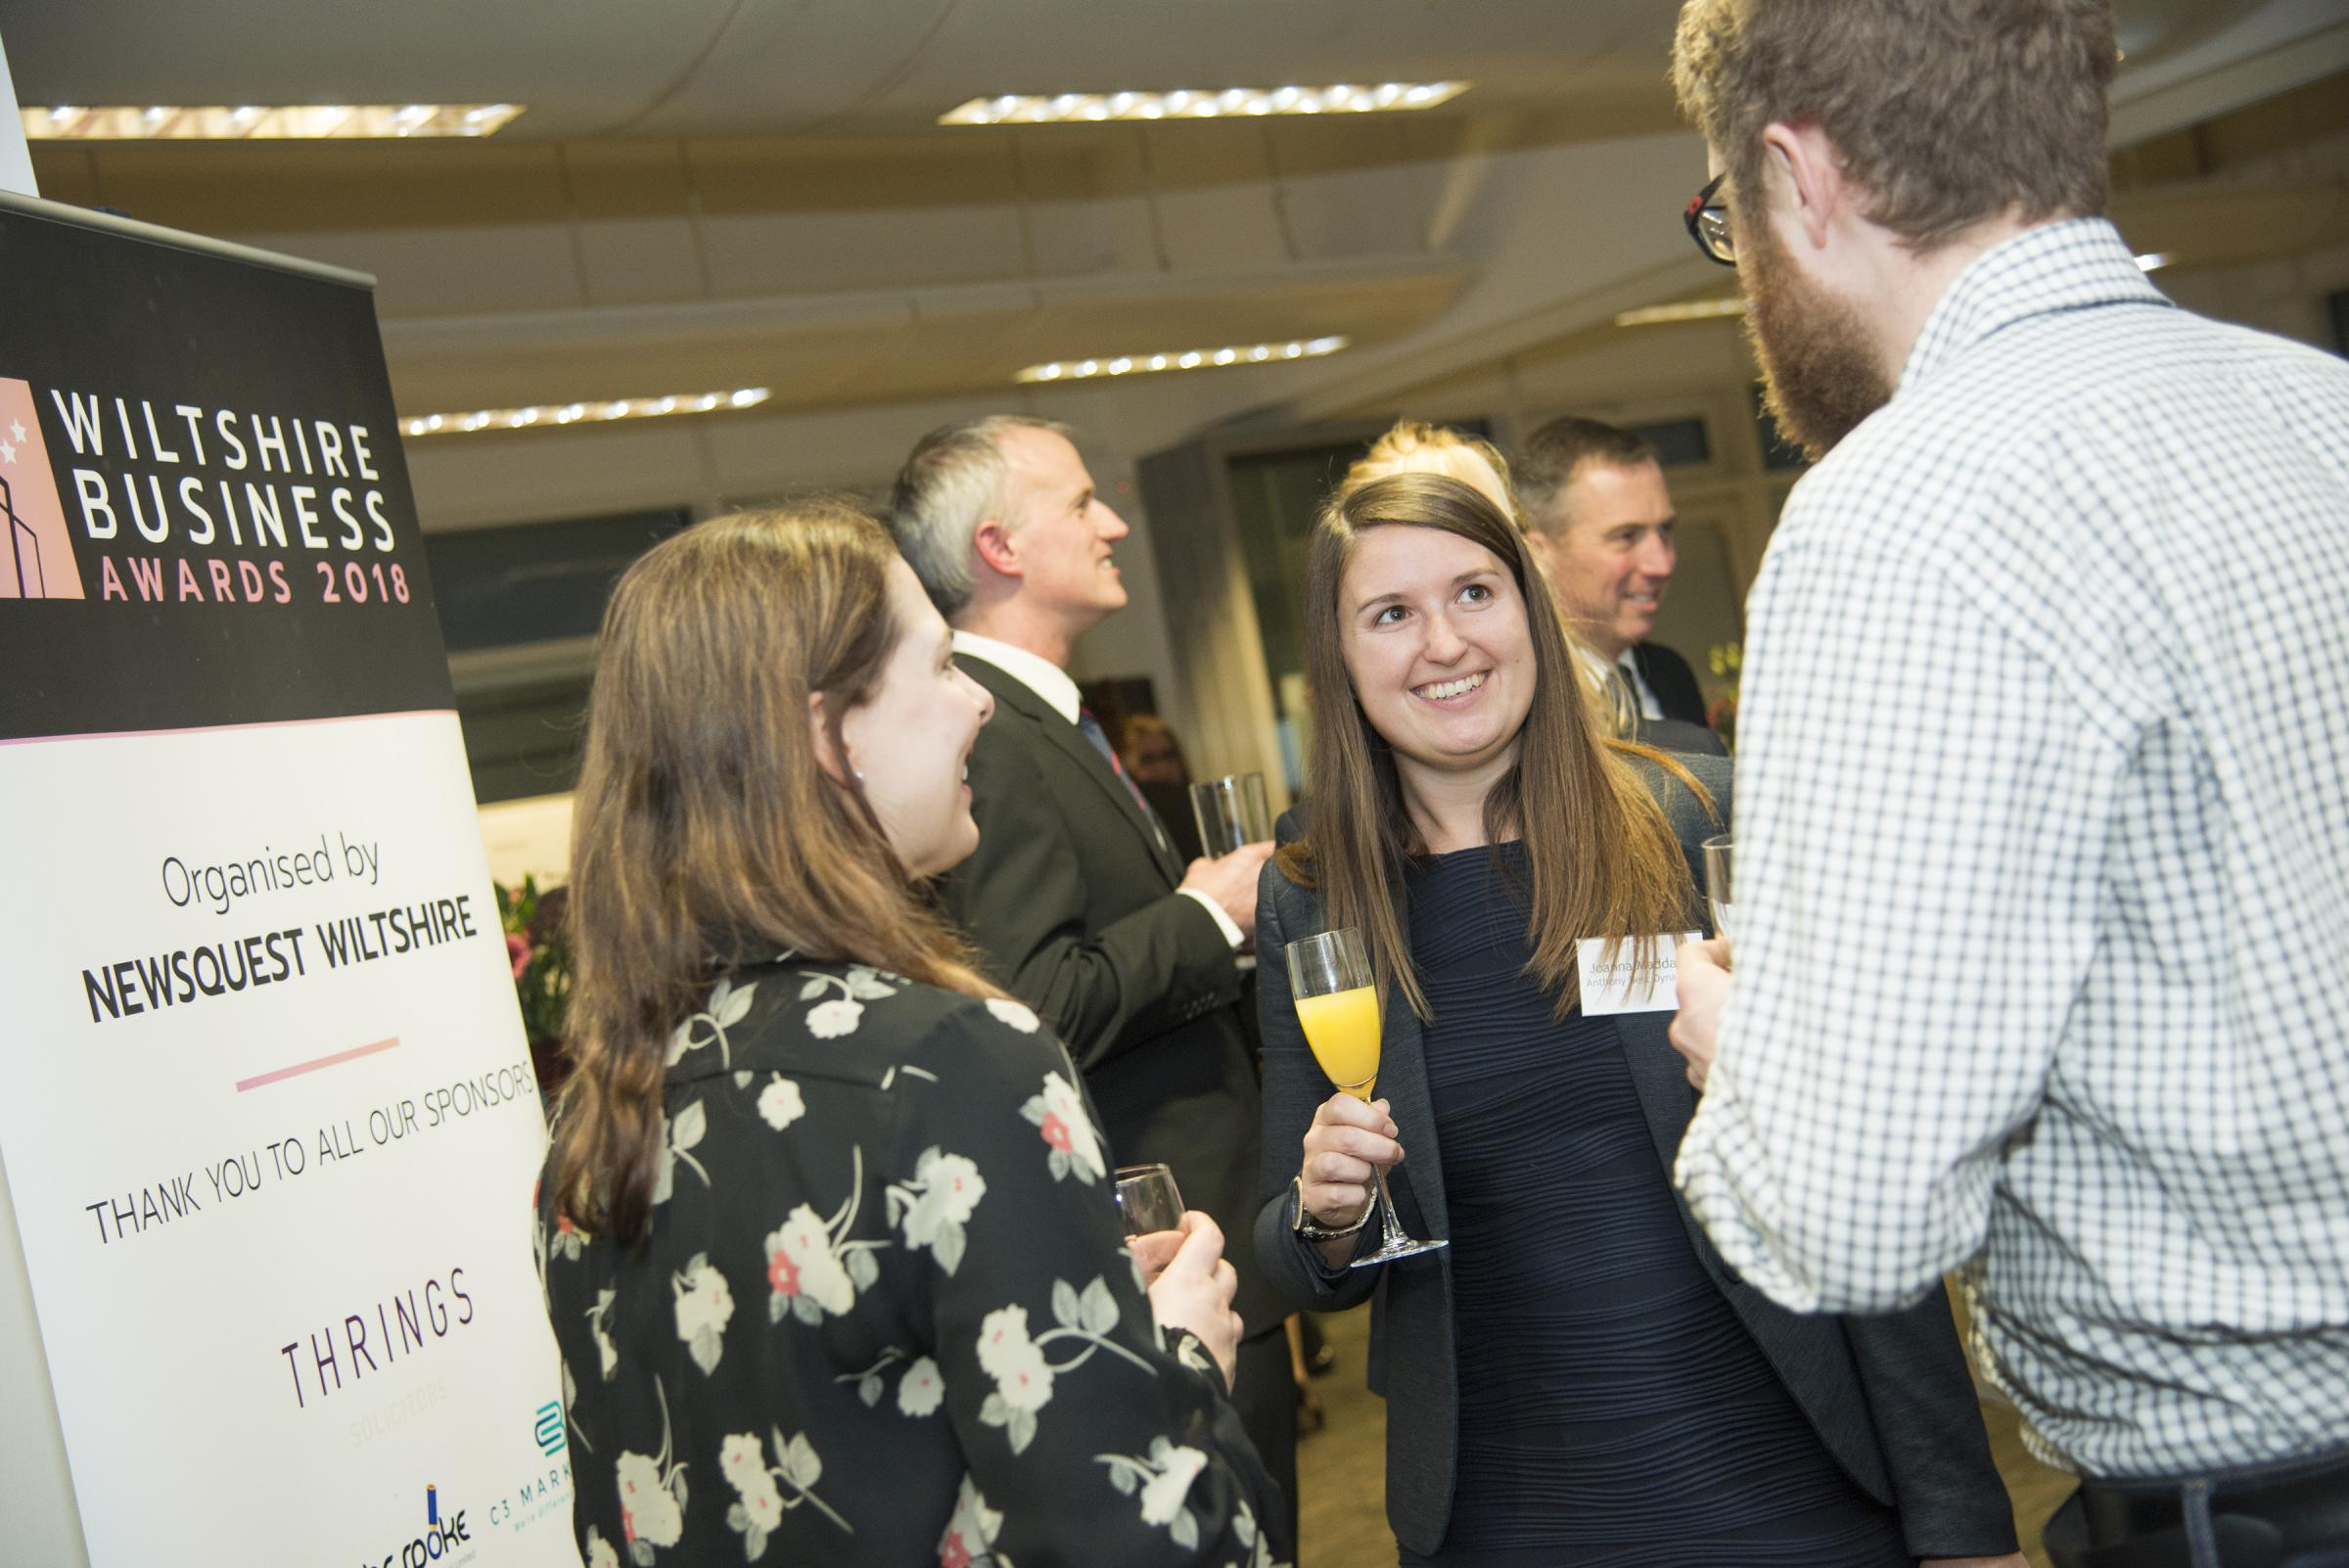 Joanna Maddam at the Wiltshire Business Awards Meet The Judges event. Picture: THOMAS KELSEY.